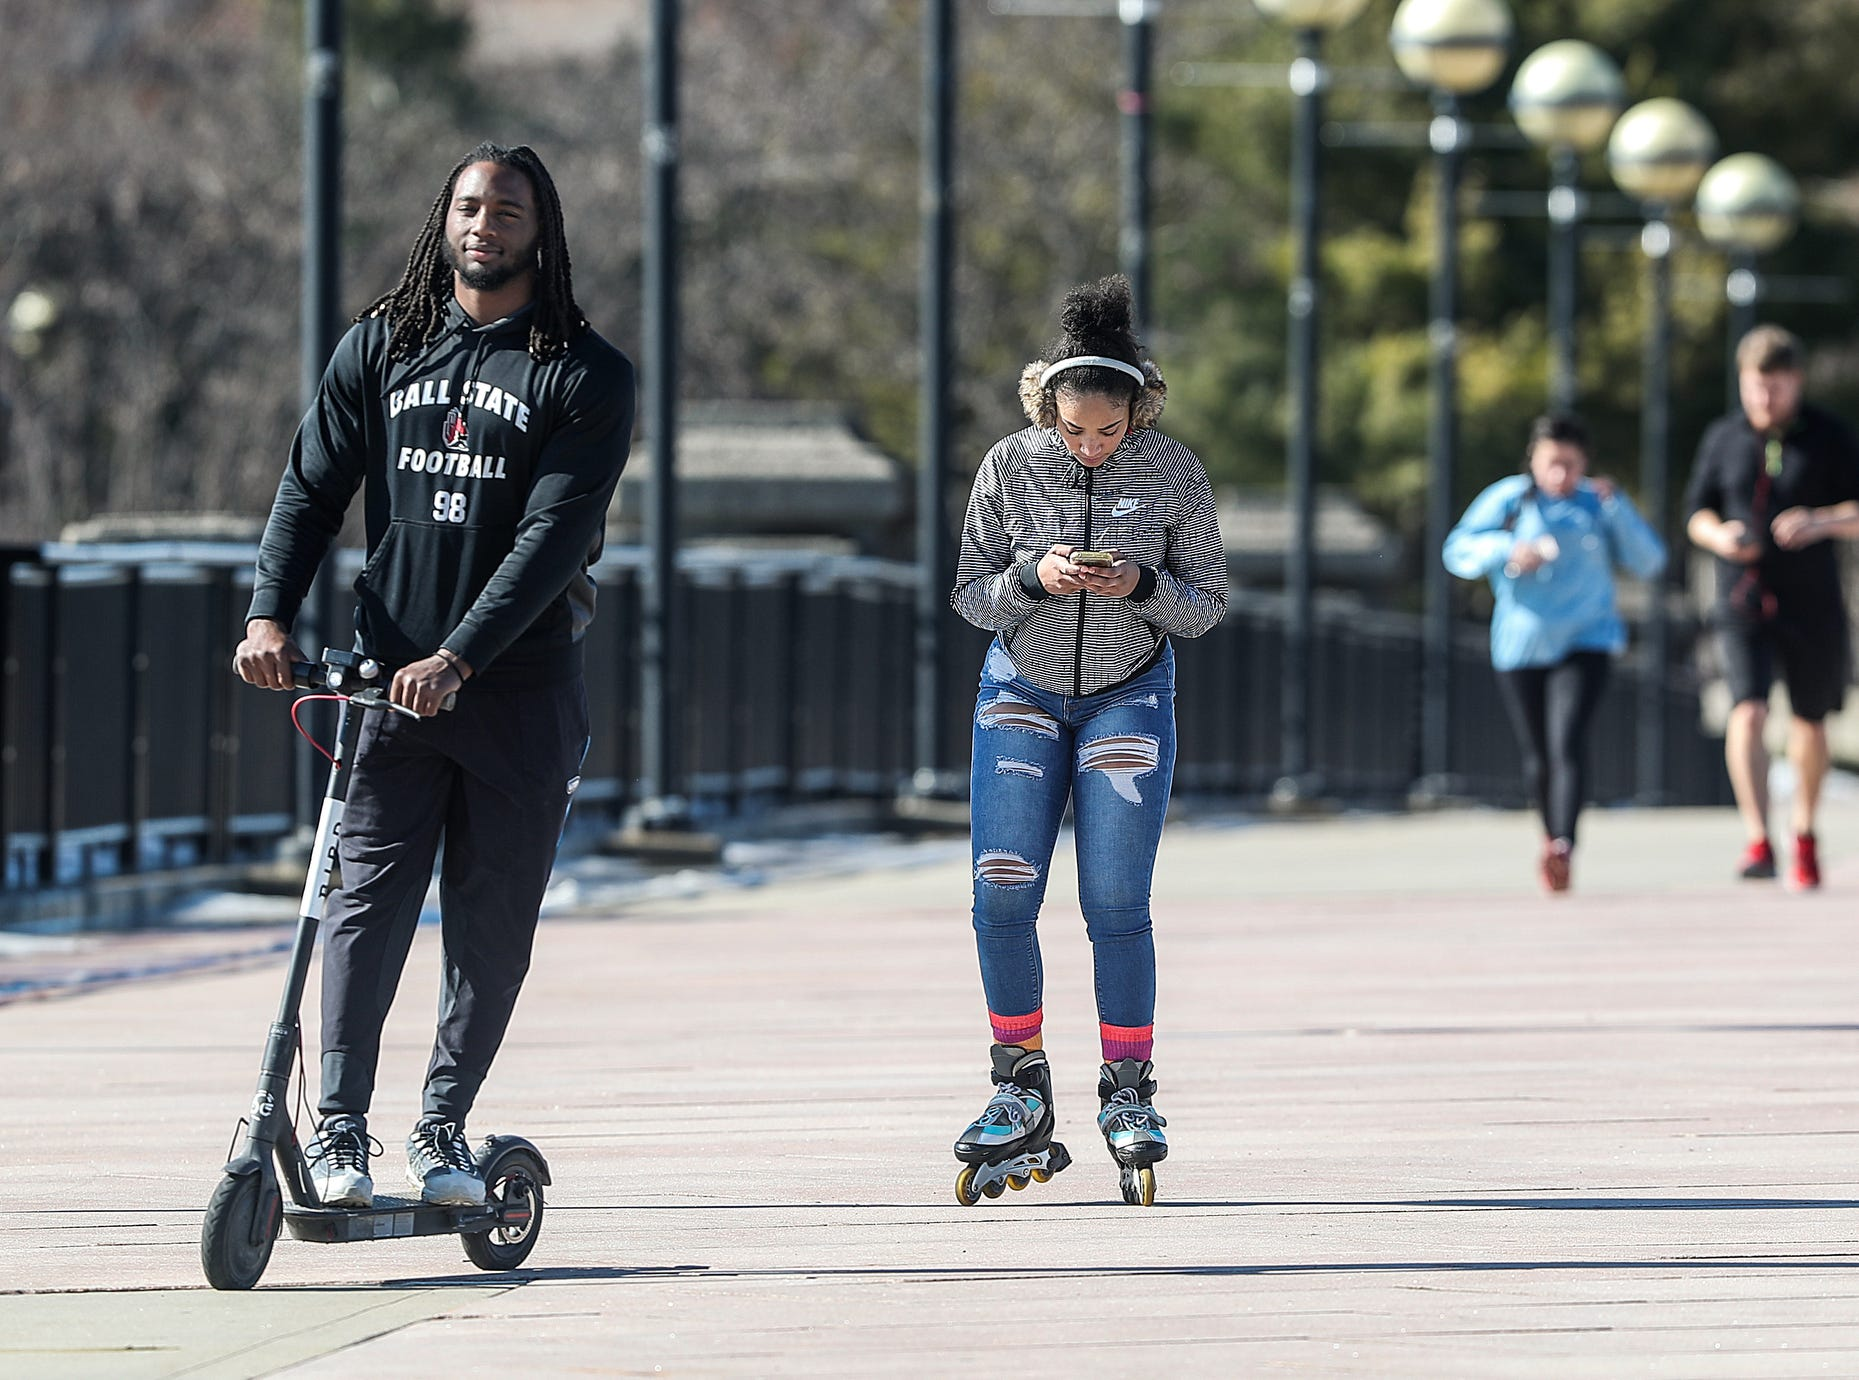 People skate, scooter, jog and walk on a 65-degree day at White River State Park in Indianapolis, Sunday, Feb. 3, 2019. The warm weather comes just days after sub-zero temperatures swept over Indiana.